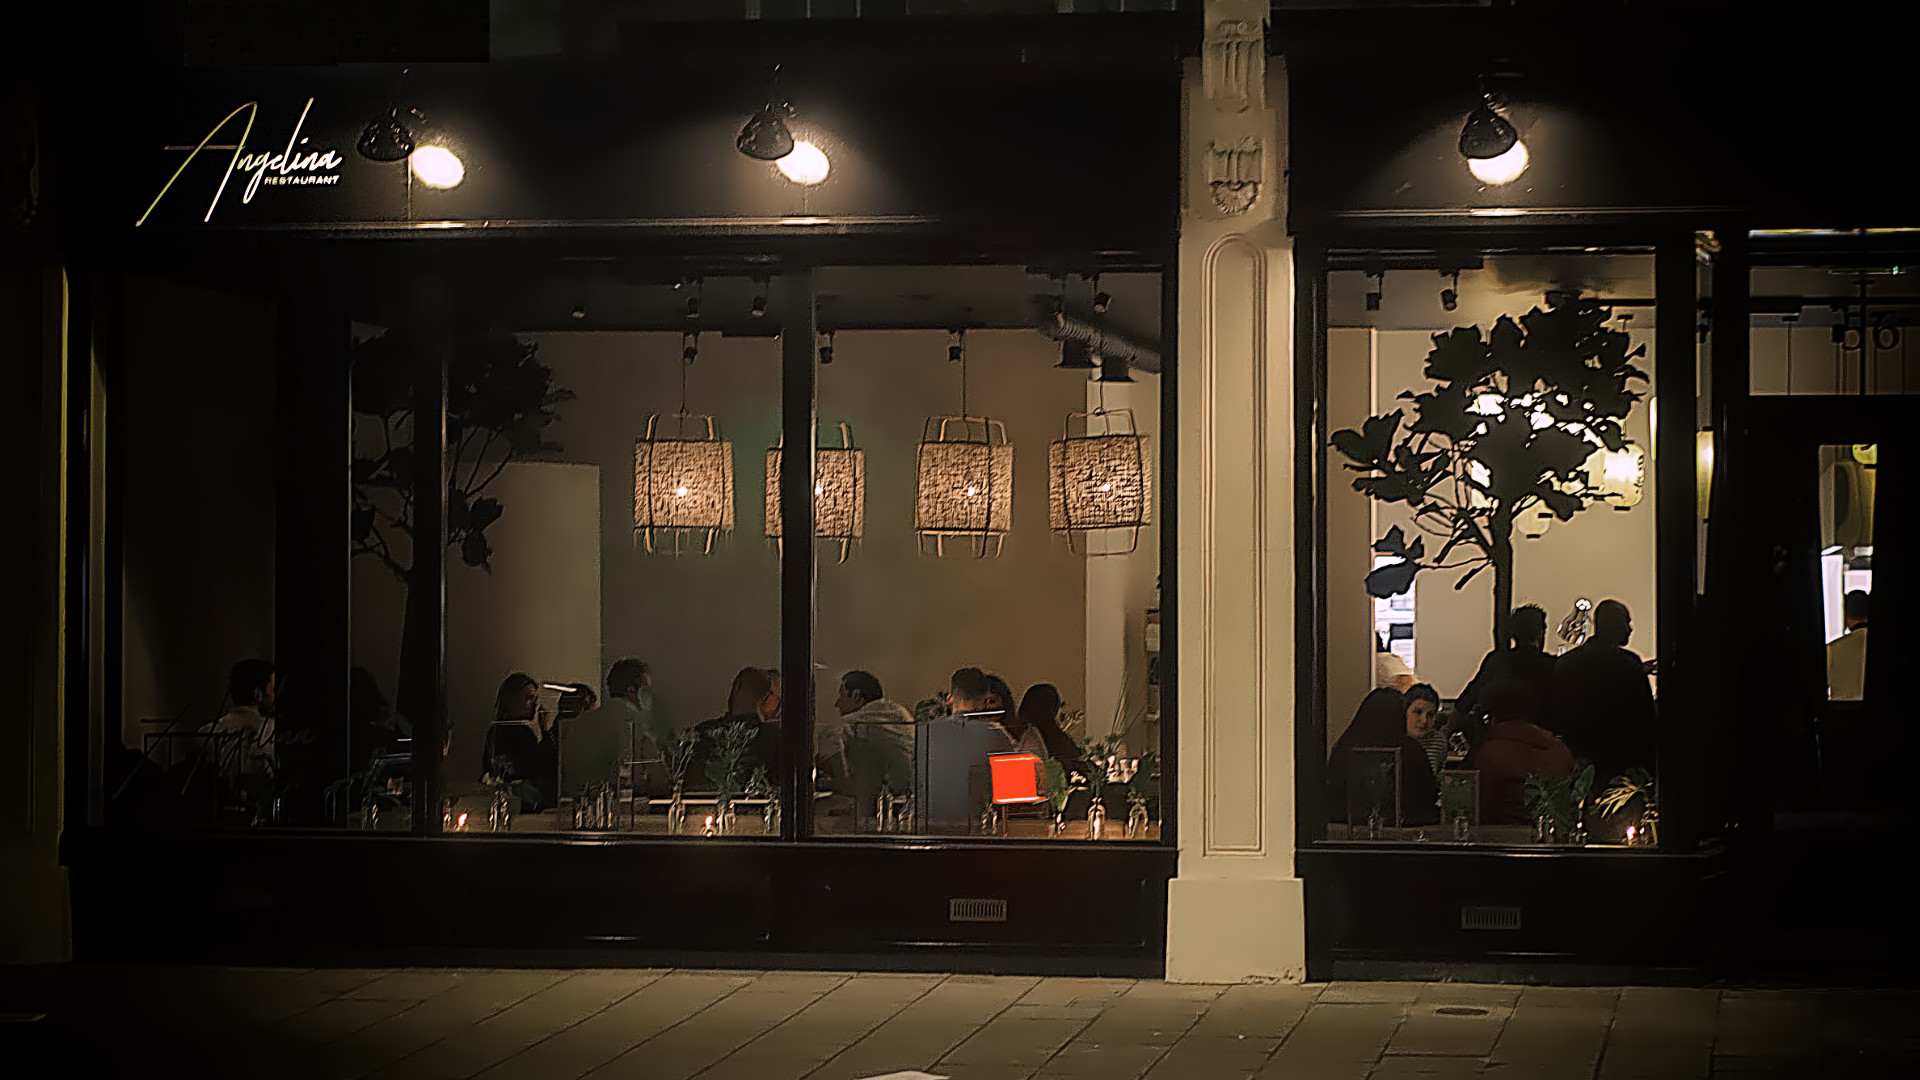 Angelina Restaurant in Dalston, East London